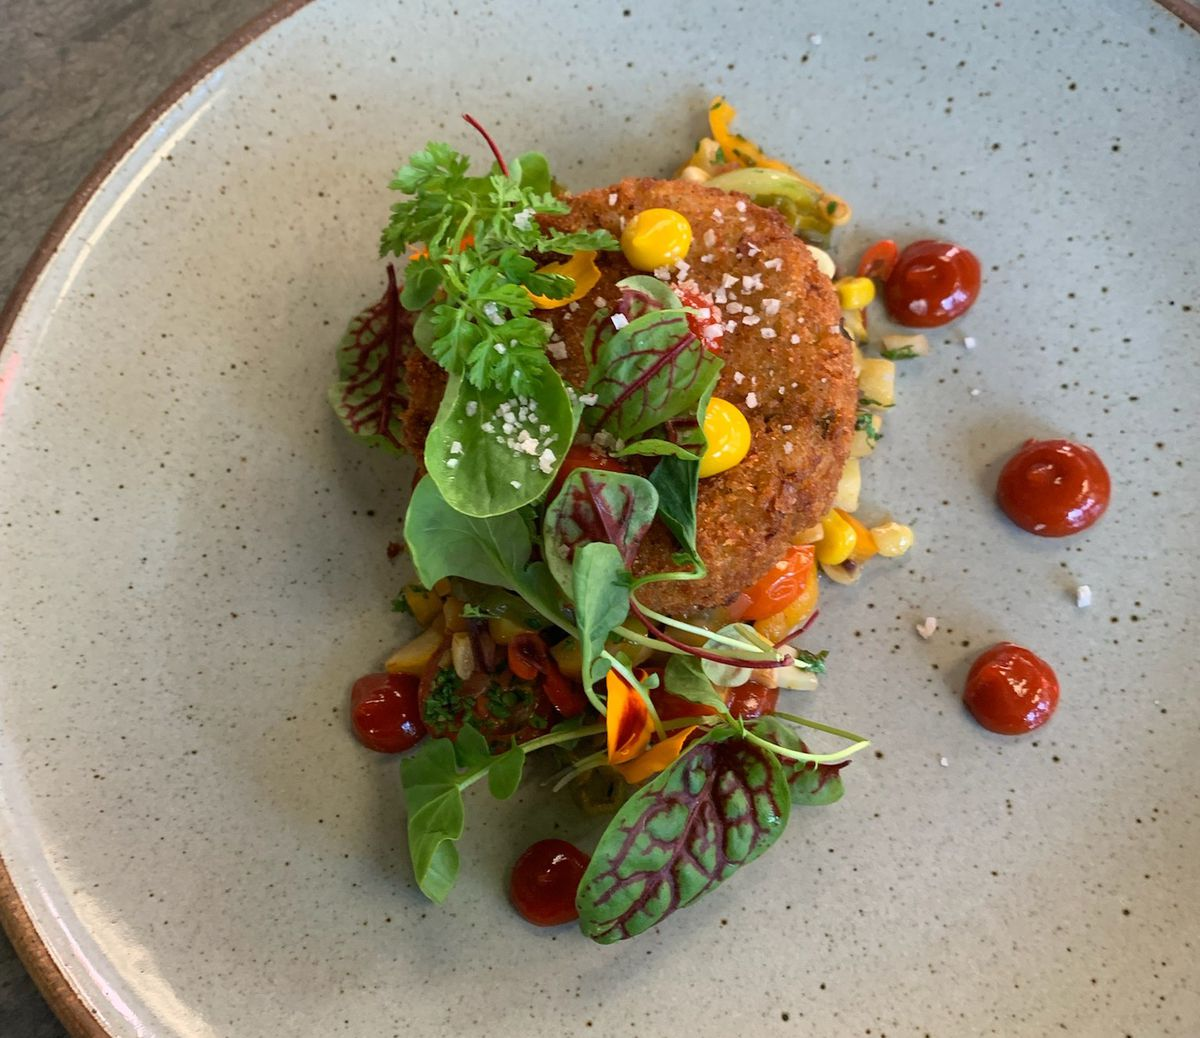 A breaded crab croquette garnished with green herbs sits on a bed of corn on a gray plate.